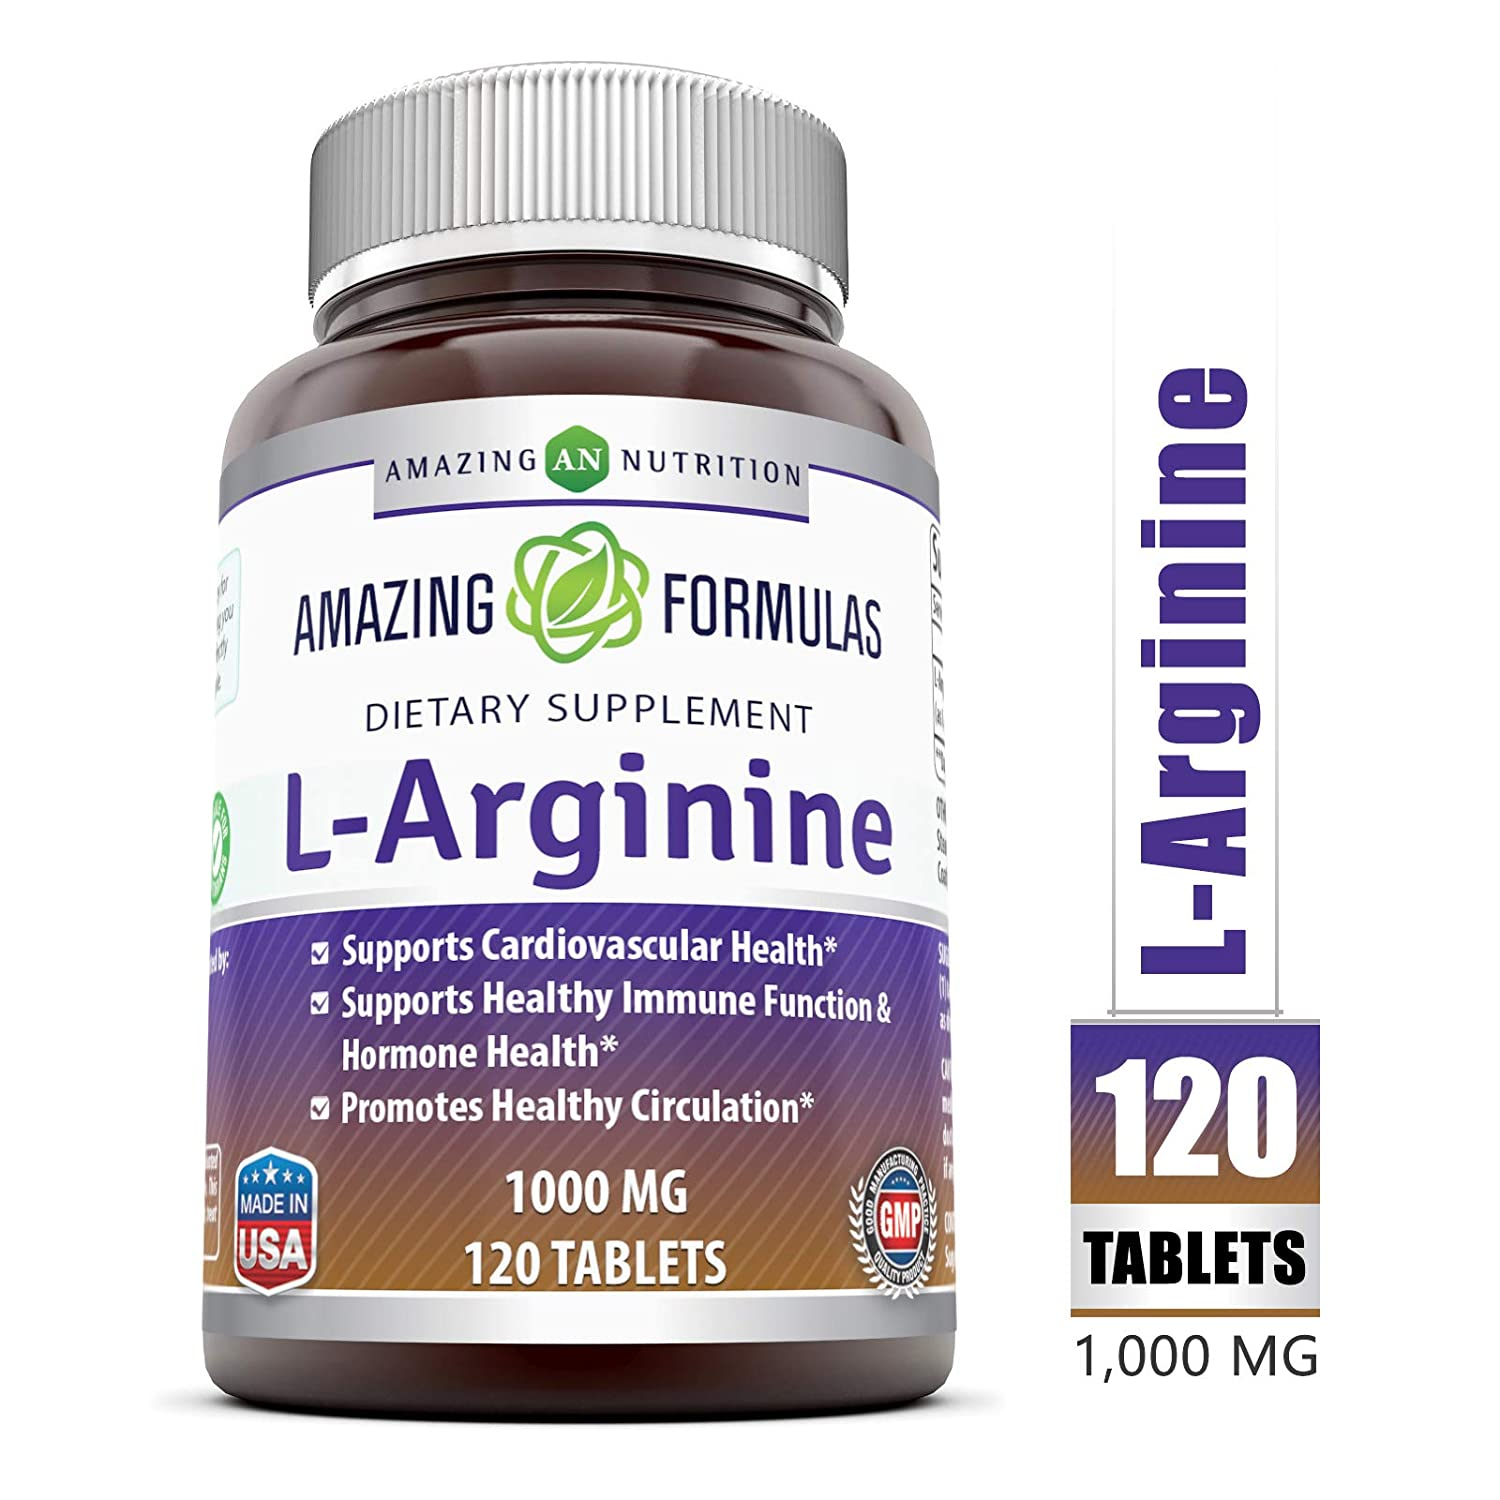 Amazing Nutrition L-arginine 1000 Mg 120 Tablets - Supports ...